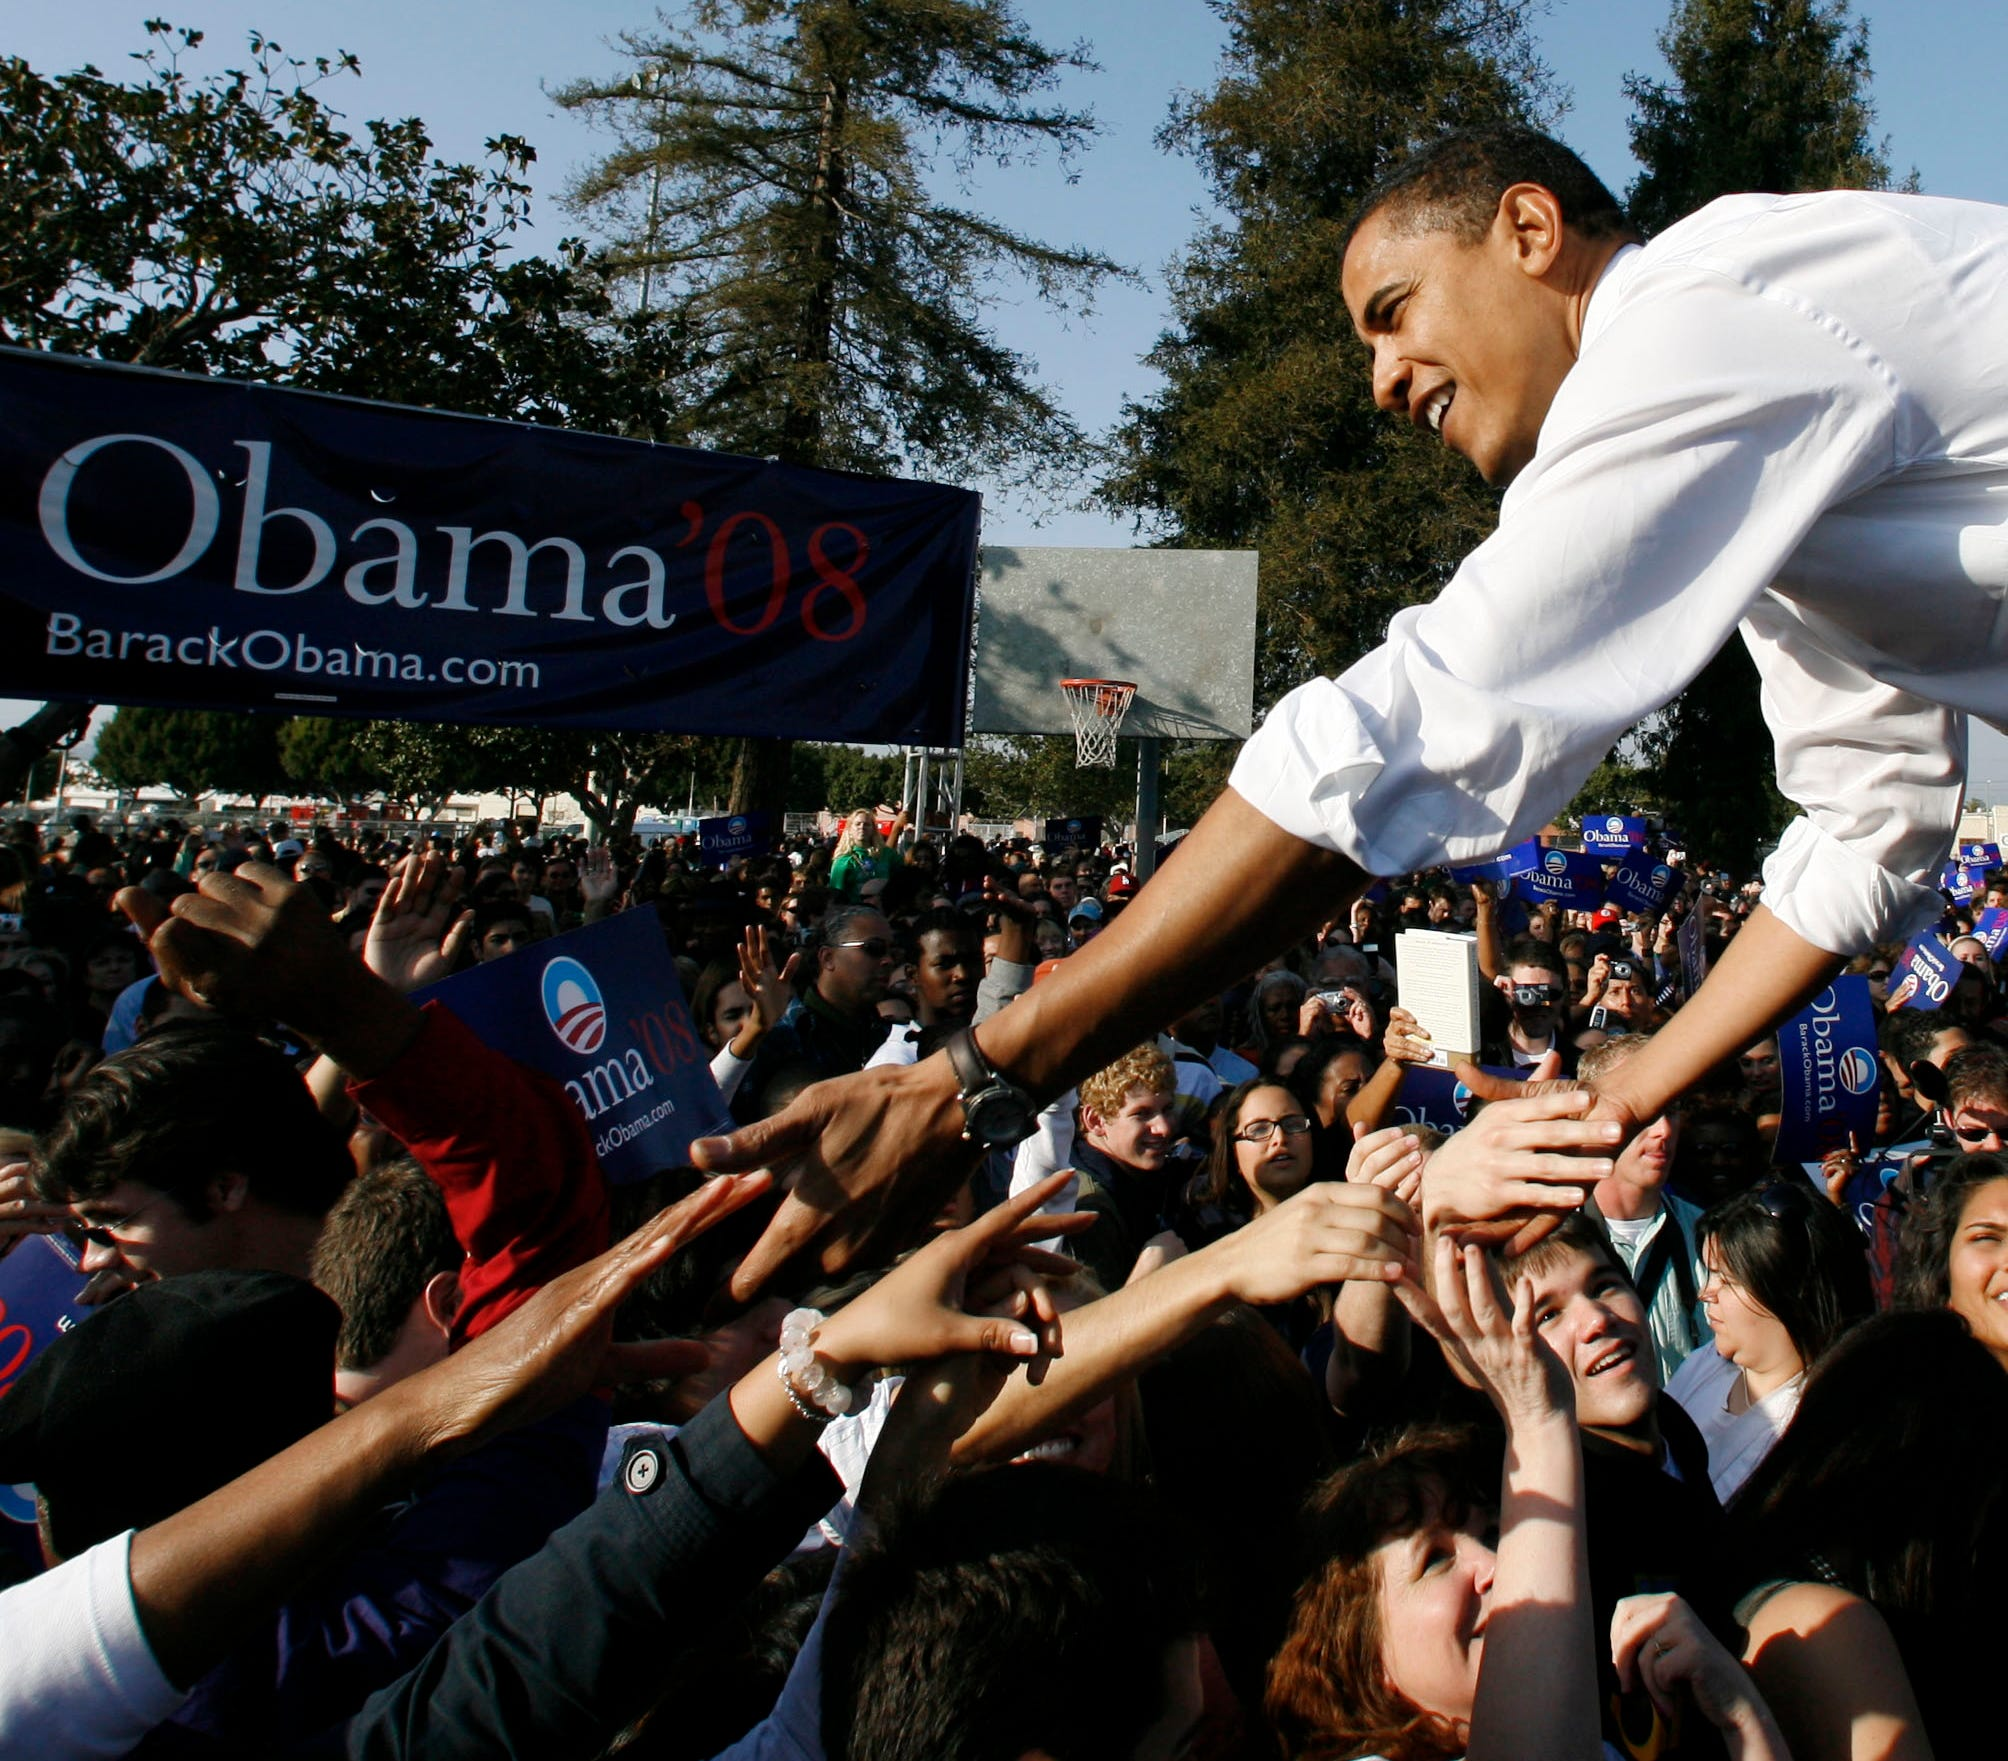 Then-Democratic presidential hopeful, Sen. Barack Obama reaches to shake the hands of supporters after his first campaign rally in Los Angeles, on Feb. 20, 2007.